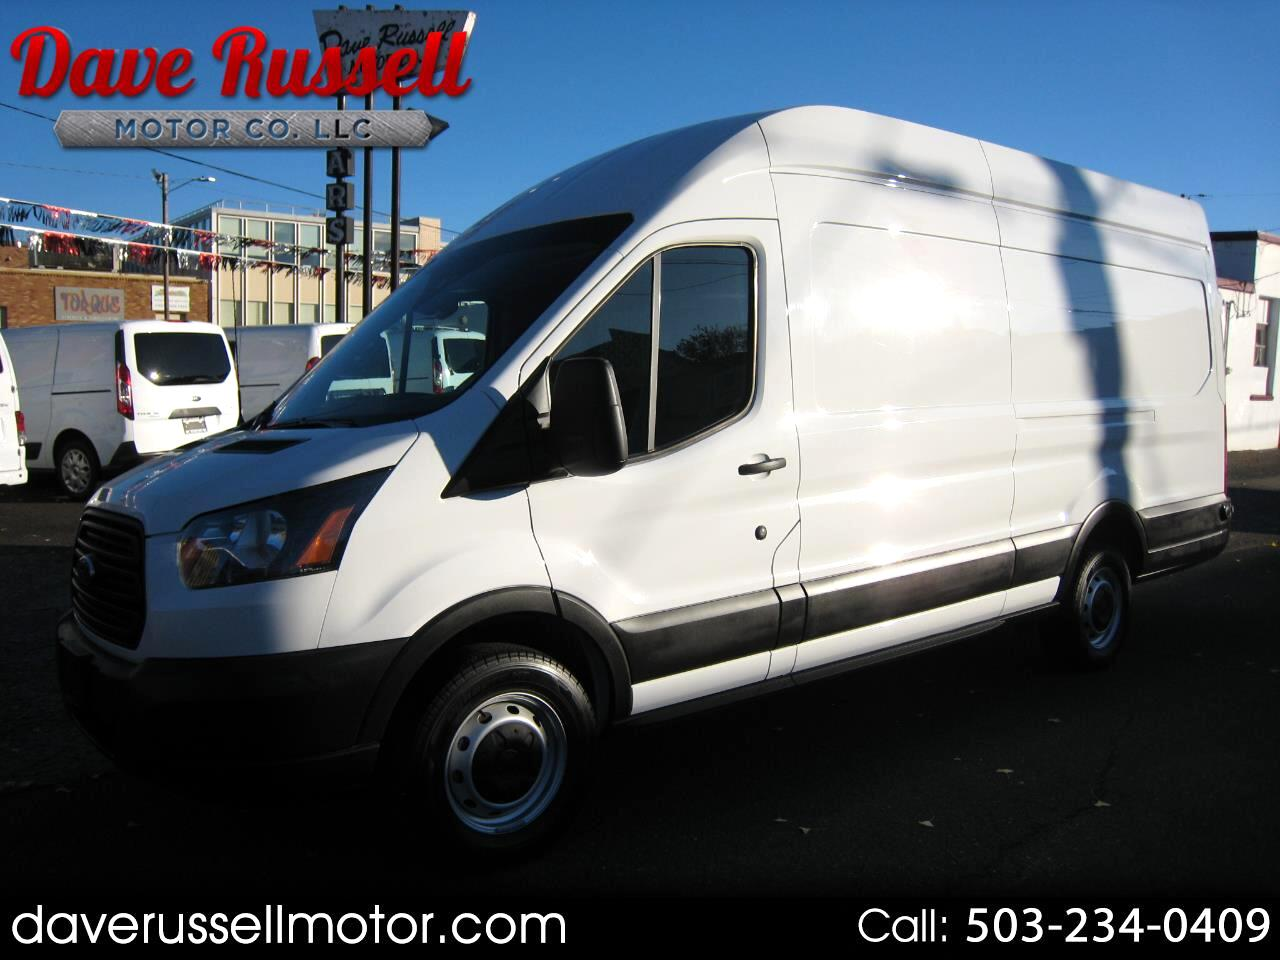 2019 Ford Transit T-250 High Roof Super Extended Cargo Van 148-in. W